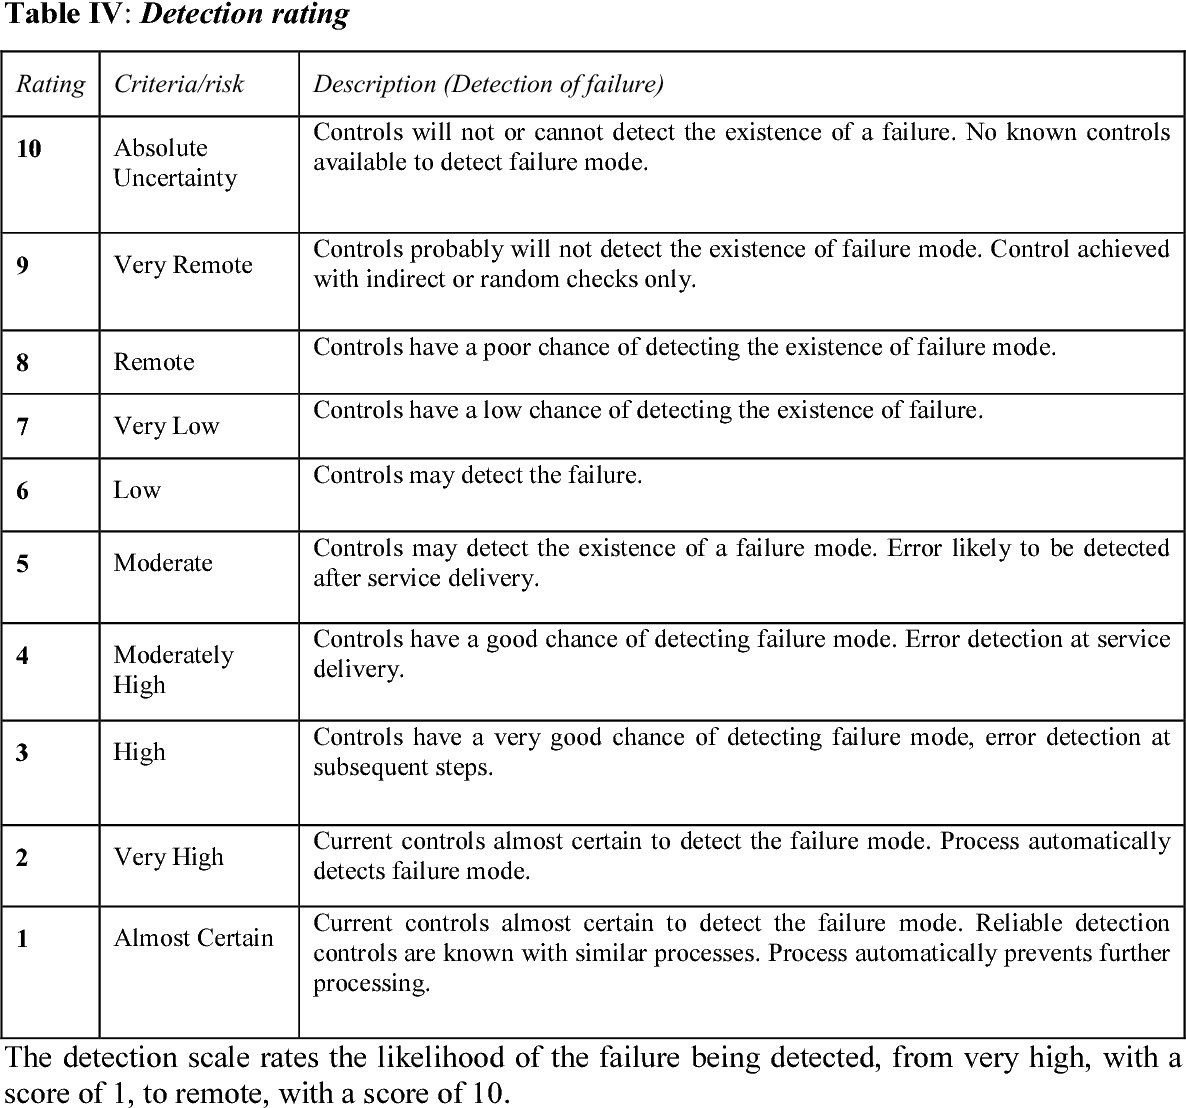 Table IV from Use of failure mode effect analysis (FMEA) to improve